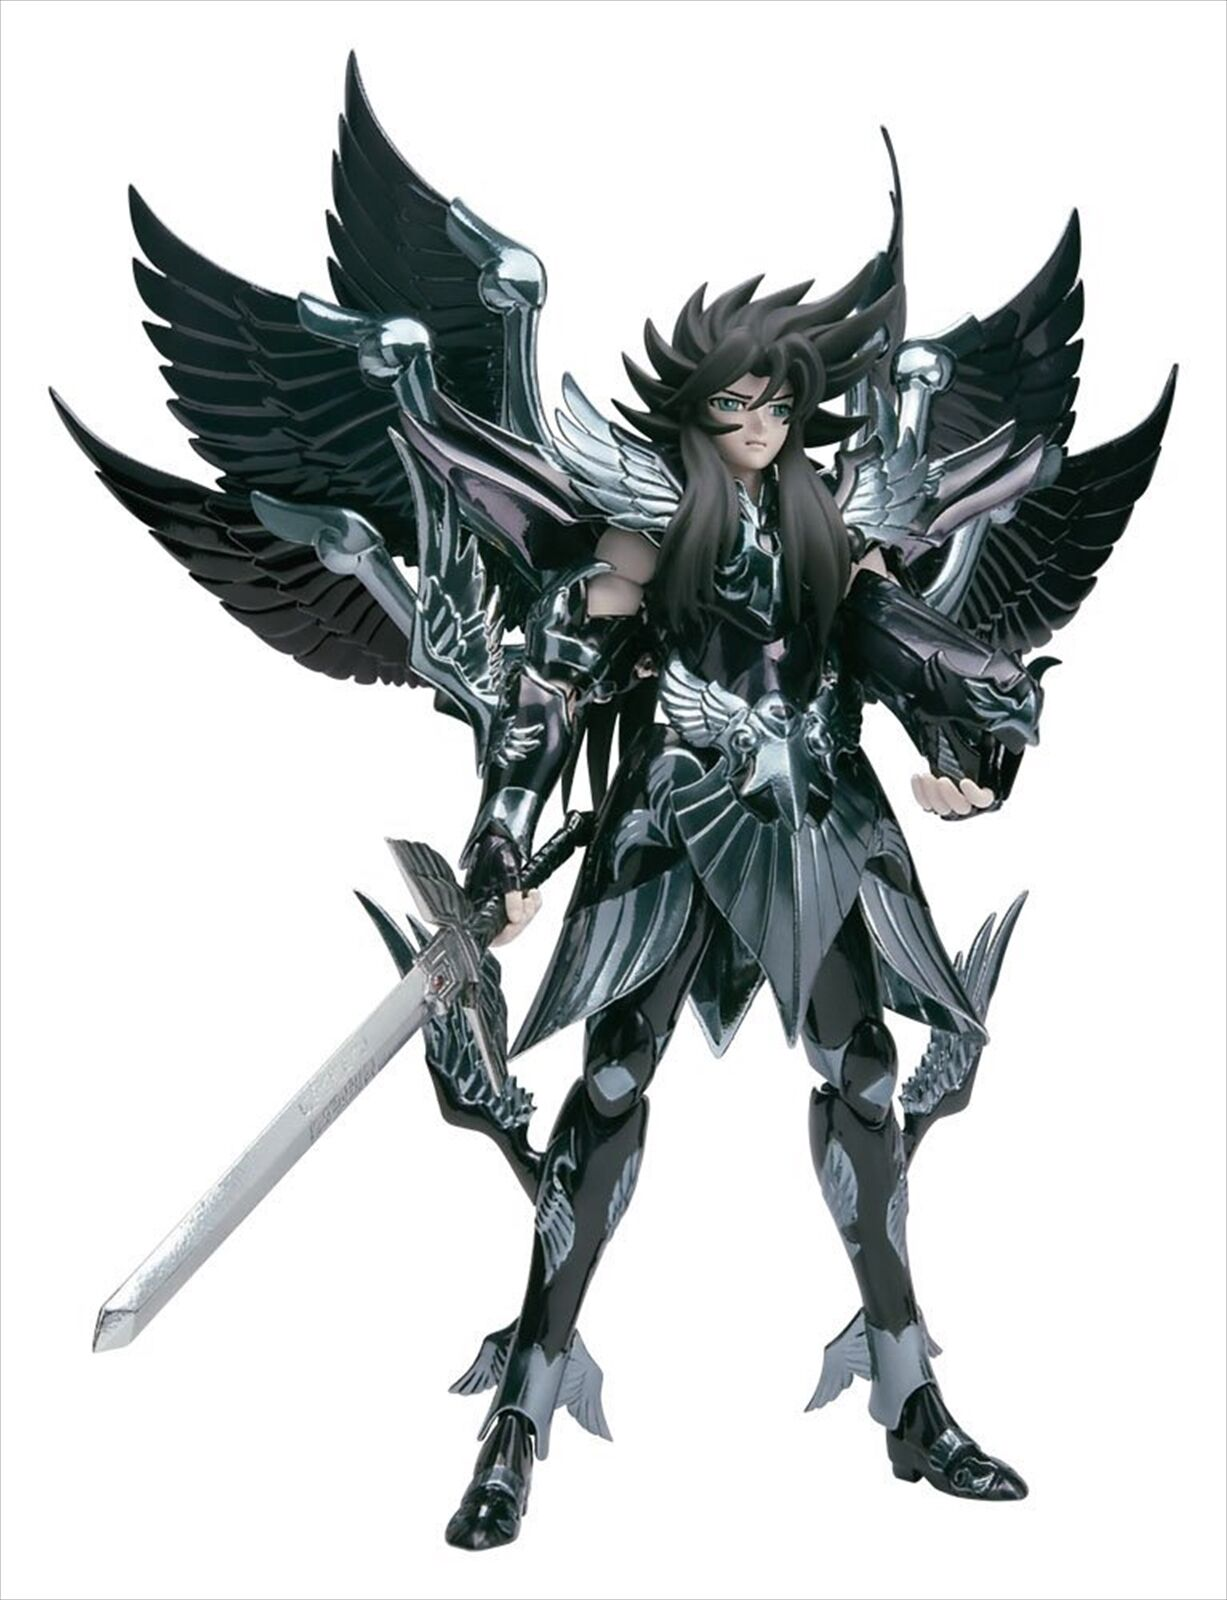 Bandai Saint Seiya Cloth Myth Hades Action Figure